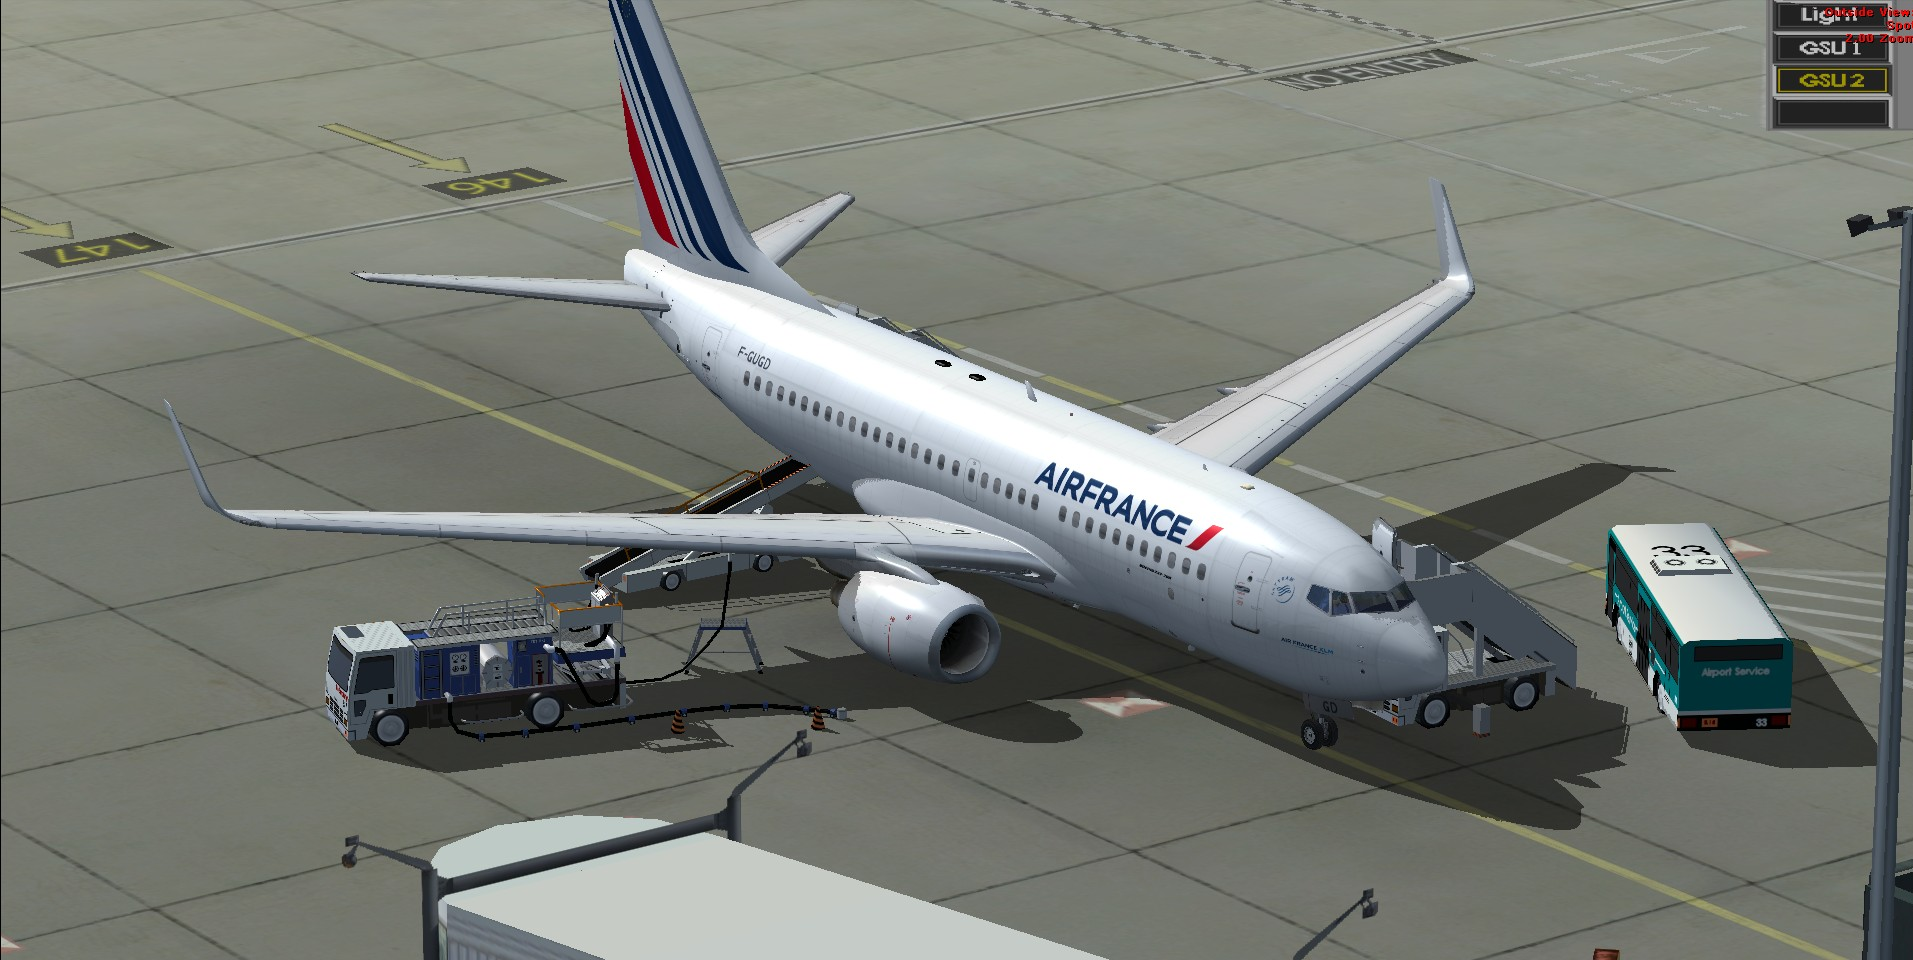 fs-freeware net - FSX Boeing 737-700 Air France Package with VC